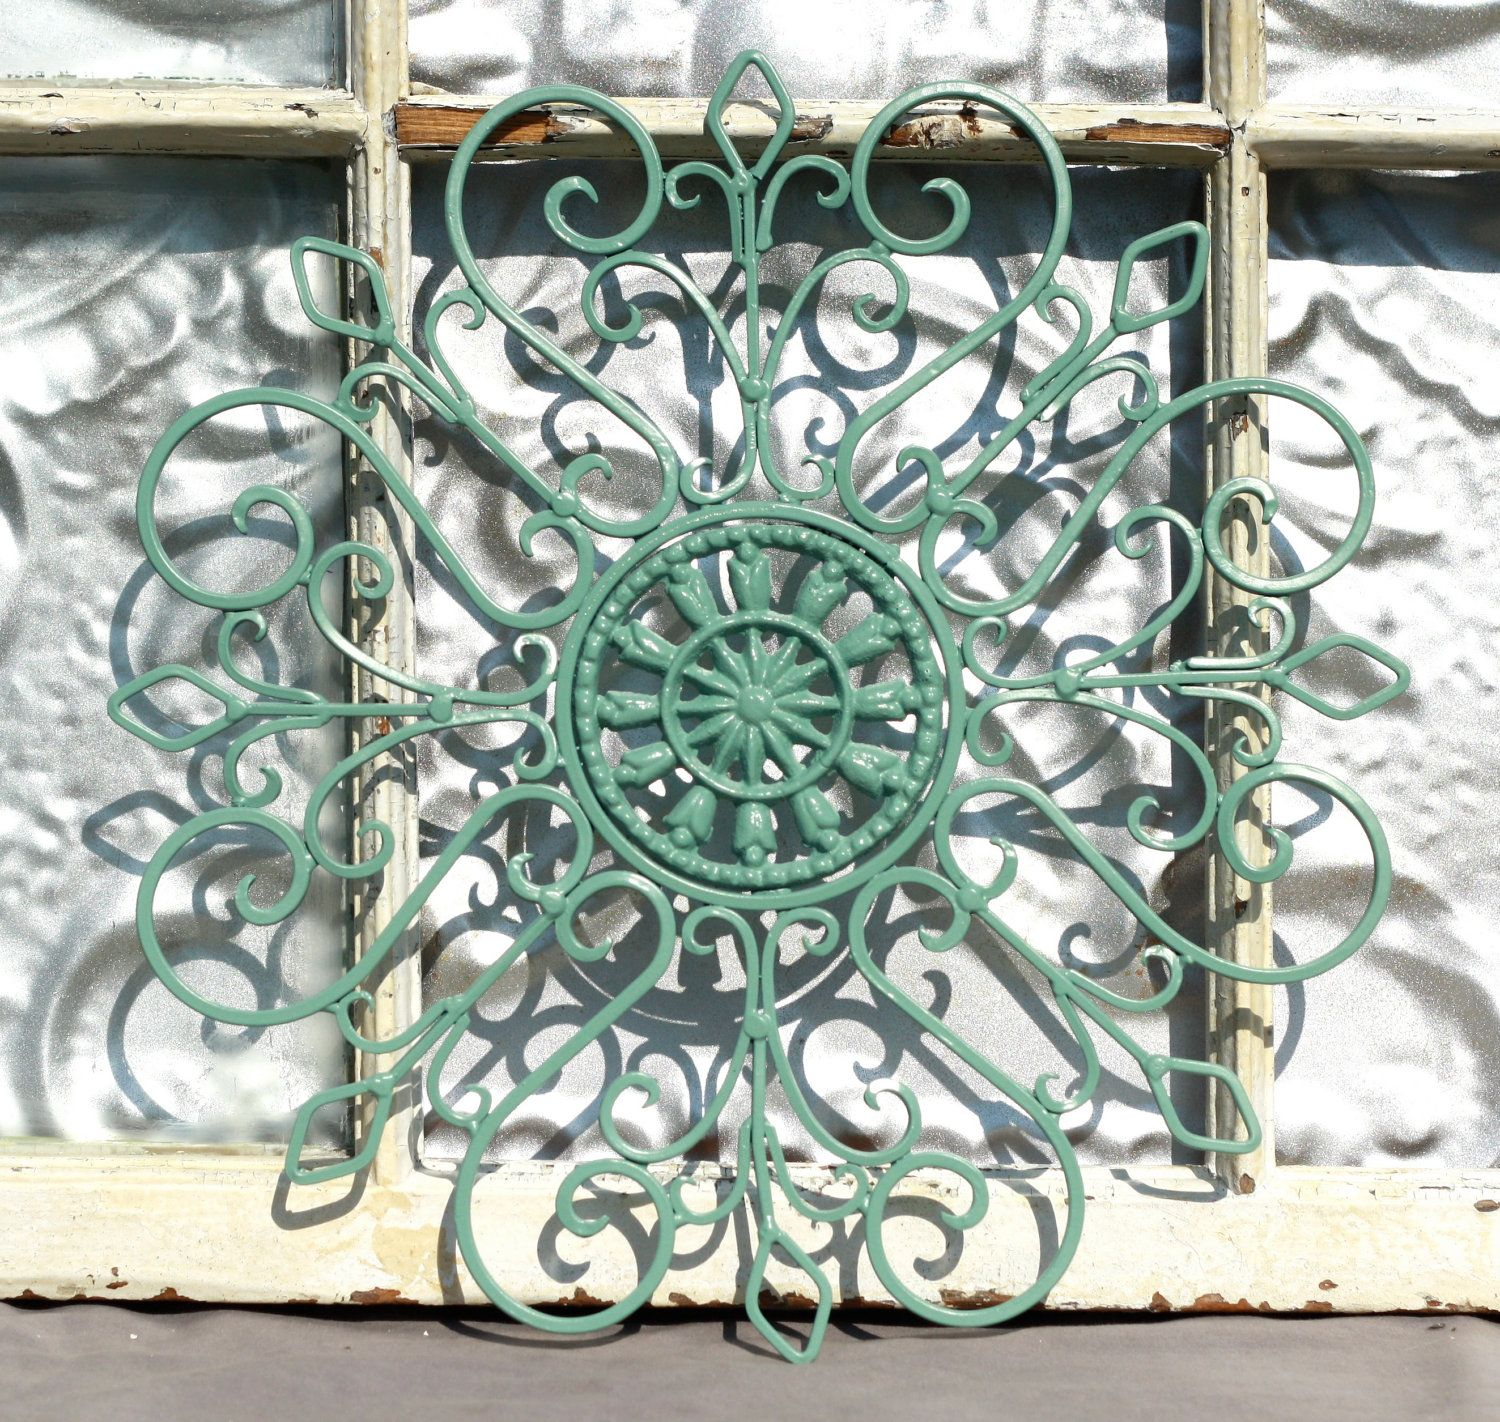 2293 2 Cast Iron Wall Decor Iron Wall Decor Metal Garden Wall Art Wrought Iron Wall Decor